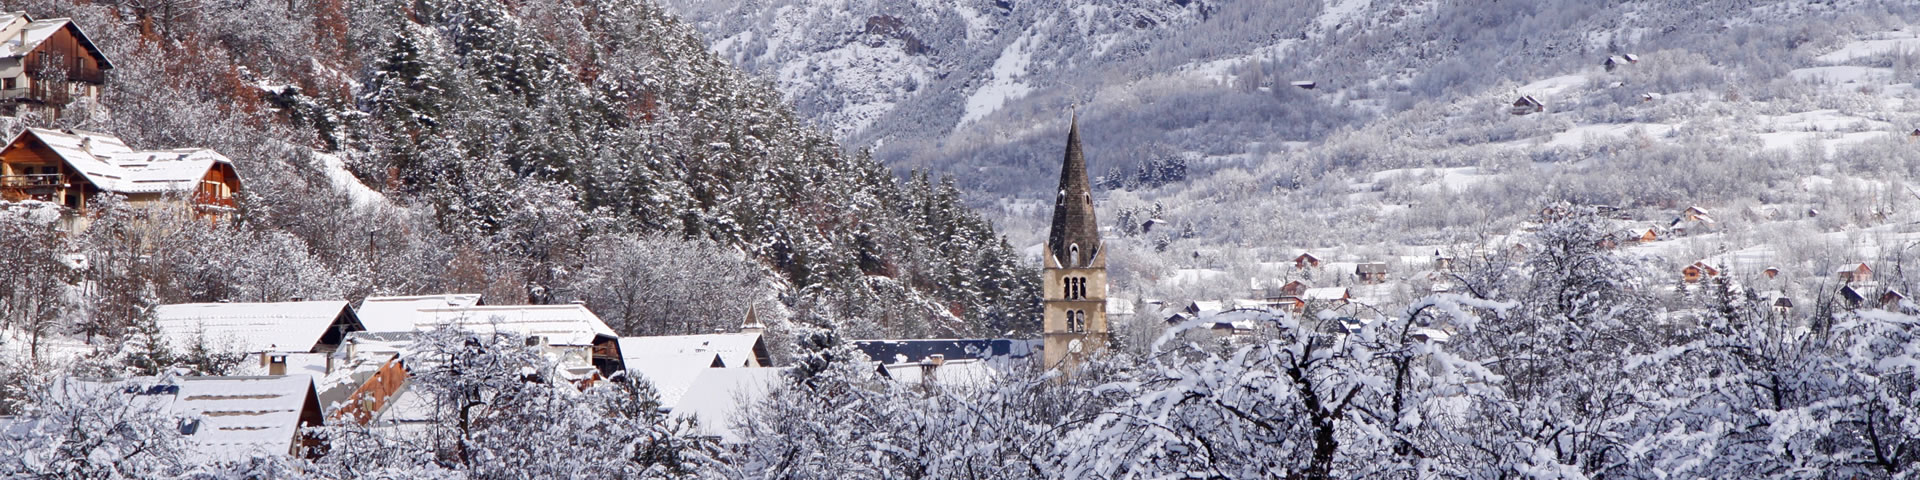 Winter in Vallouise - The Southern French Alps